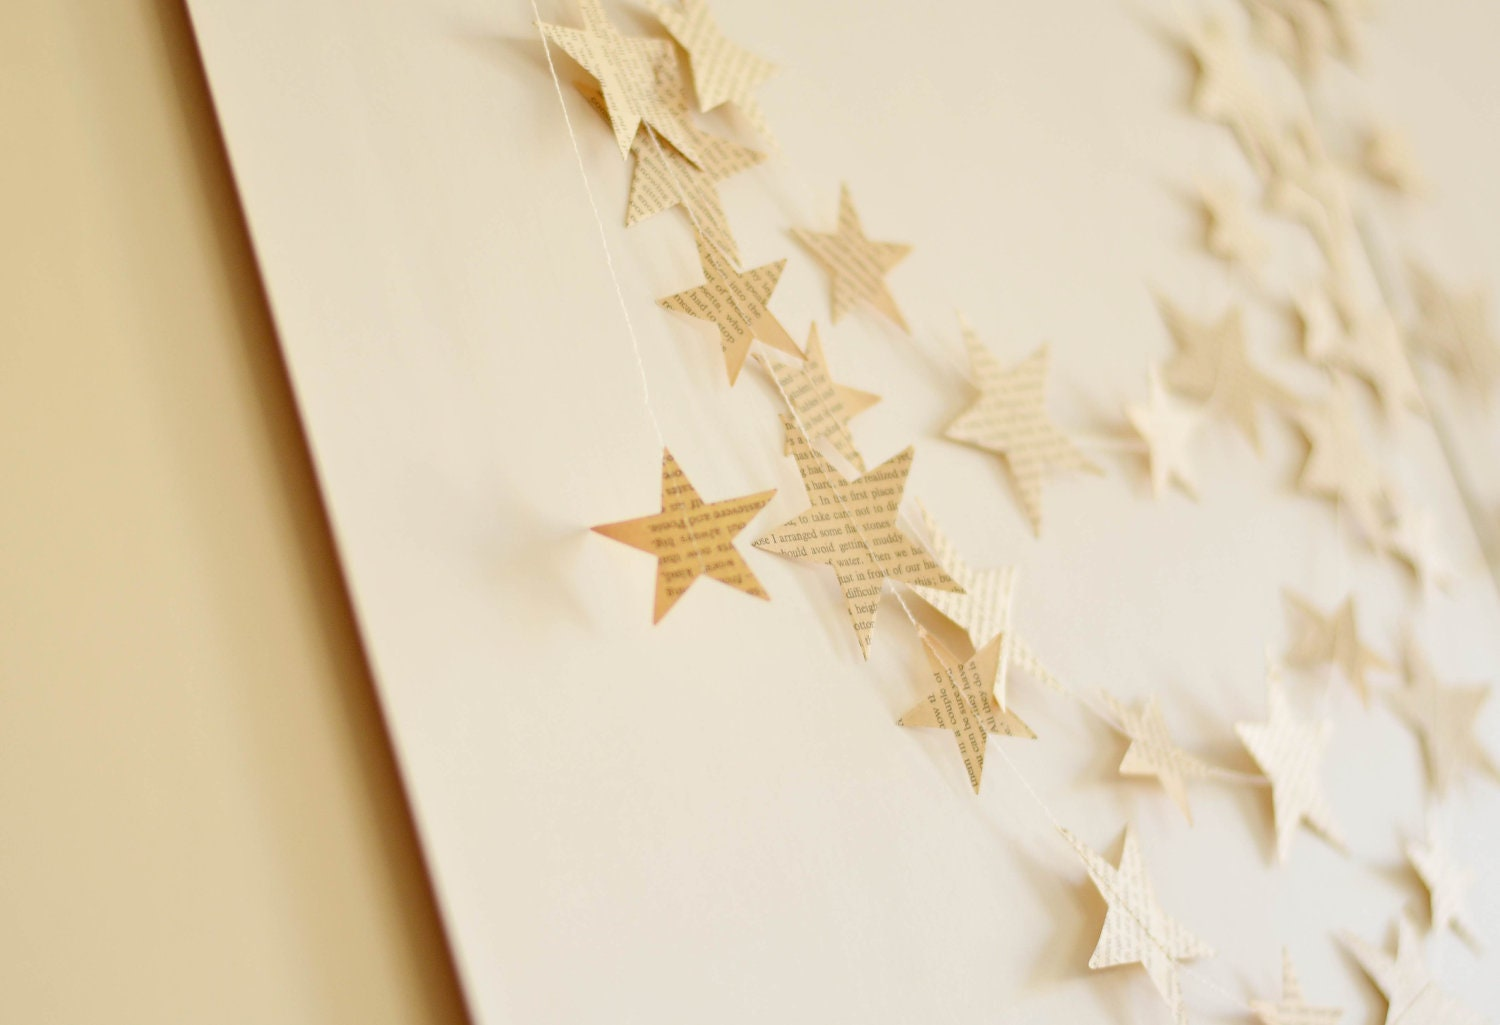 Eco Wedding Paper Garlands, Recycled vintage paper wedding decor, Paper Star Garland - CoutureByAyca